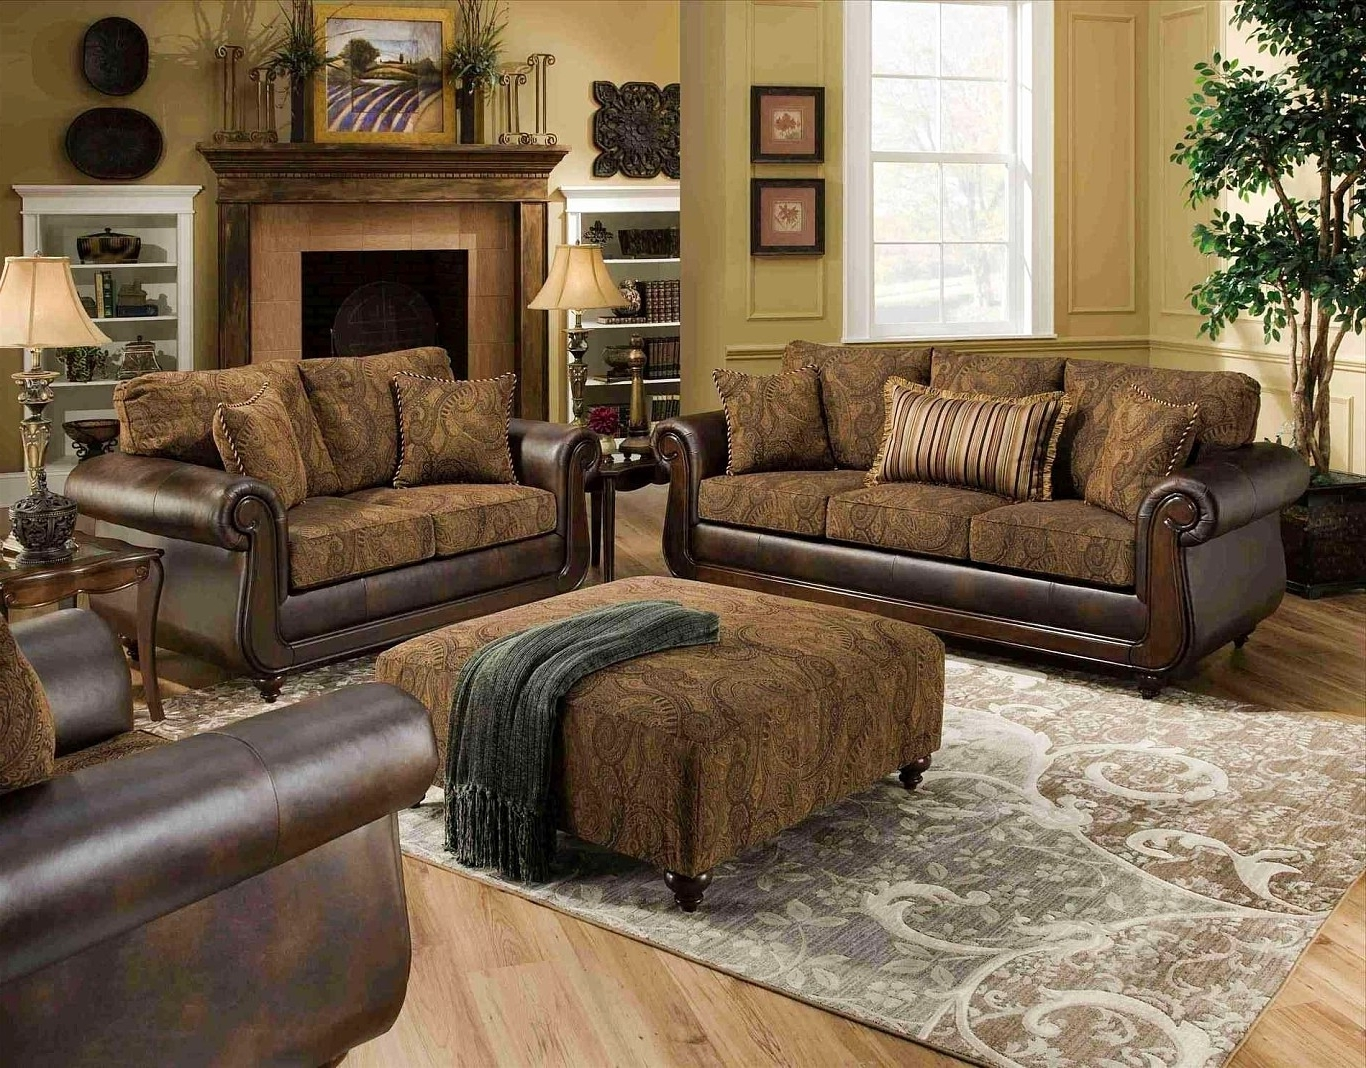 Well Liked Vino Reclining Sofa Badcock Hamilton Badcock Amarillo Trifecta With Regard To Farmers Furniture Sectional Sofas (View 14 of 15)